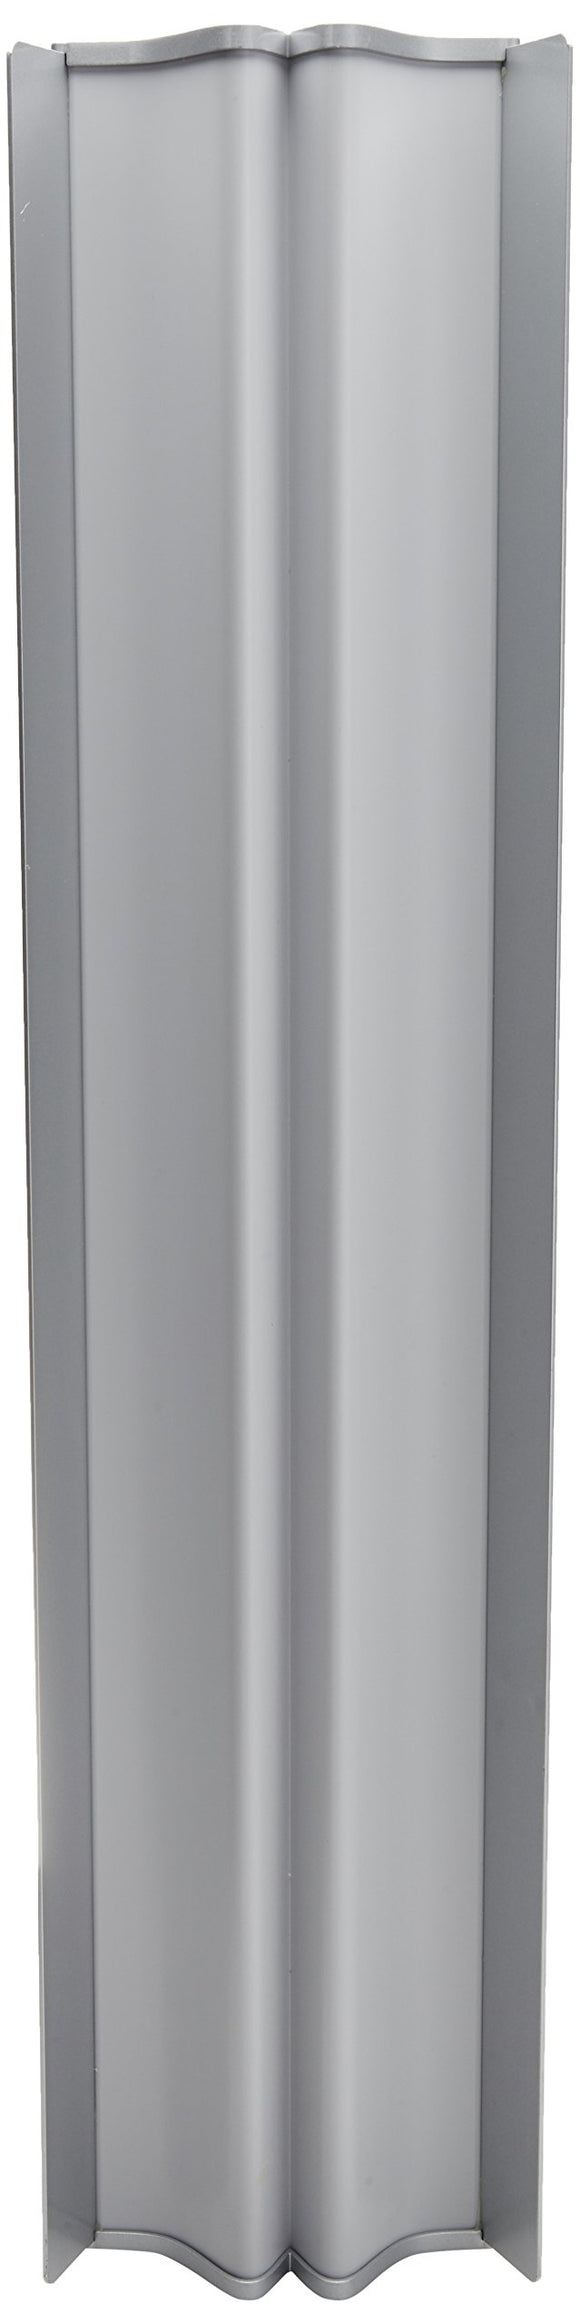 Ubiquiti airMAX ac 2x2 BaseStation Sector Antenna (AM-5AC21-60)